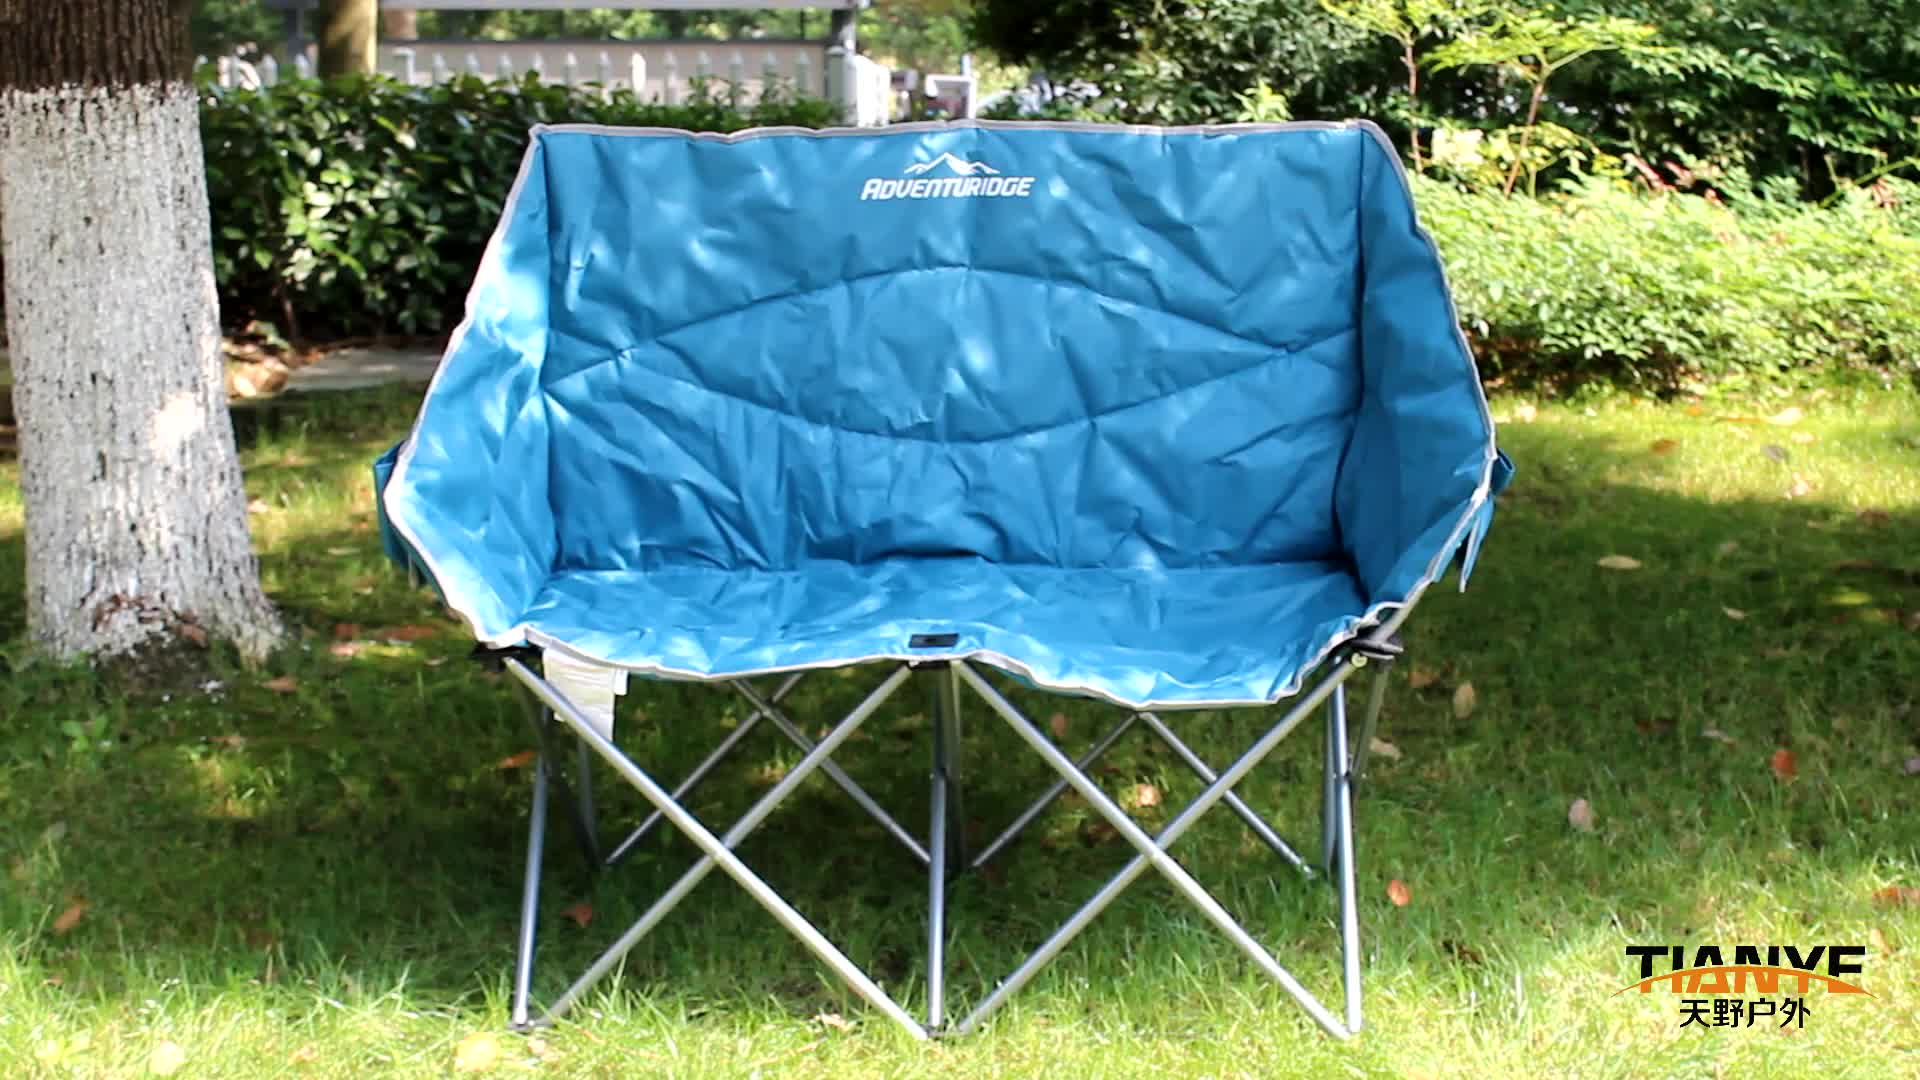 Tianye outdoor loveseat folding camping chair furniture metal portable double Folding Chair with Cup Holder